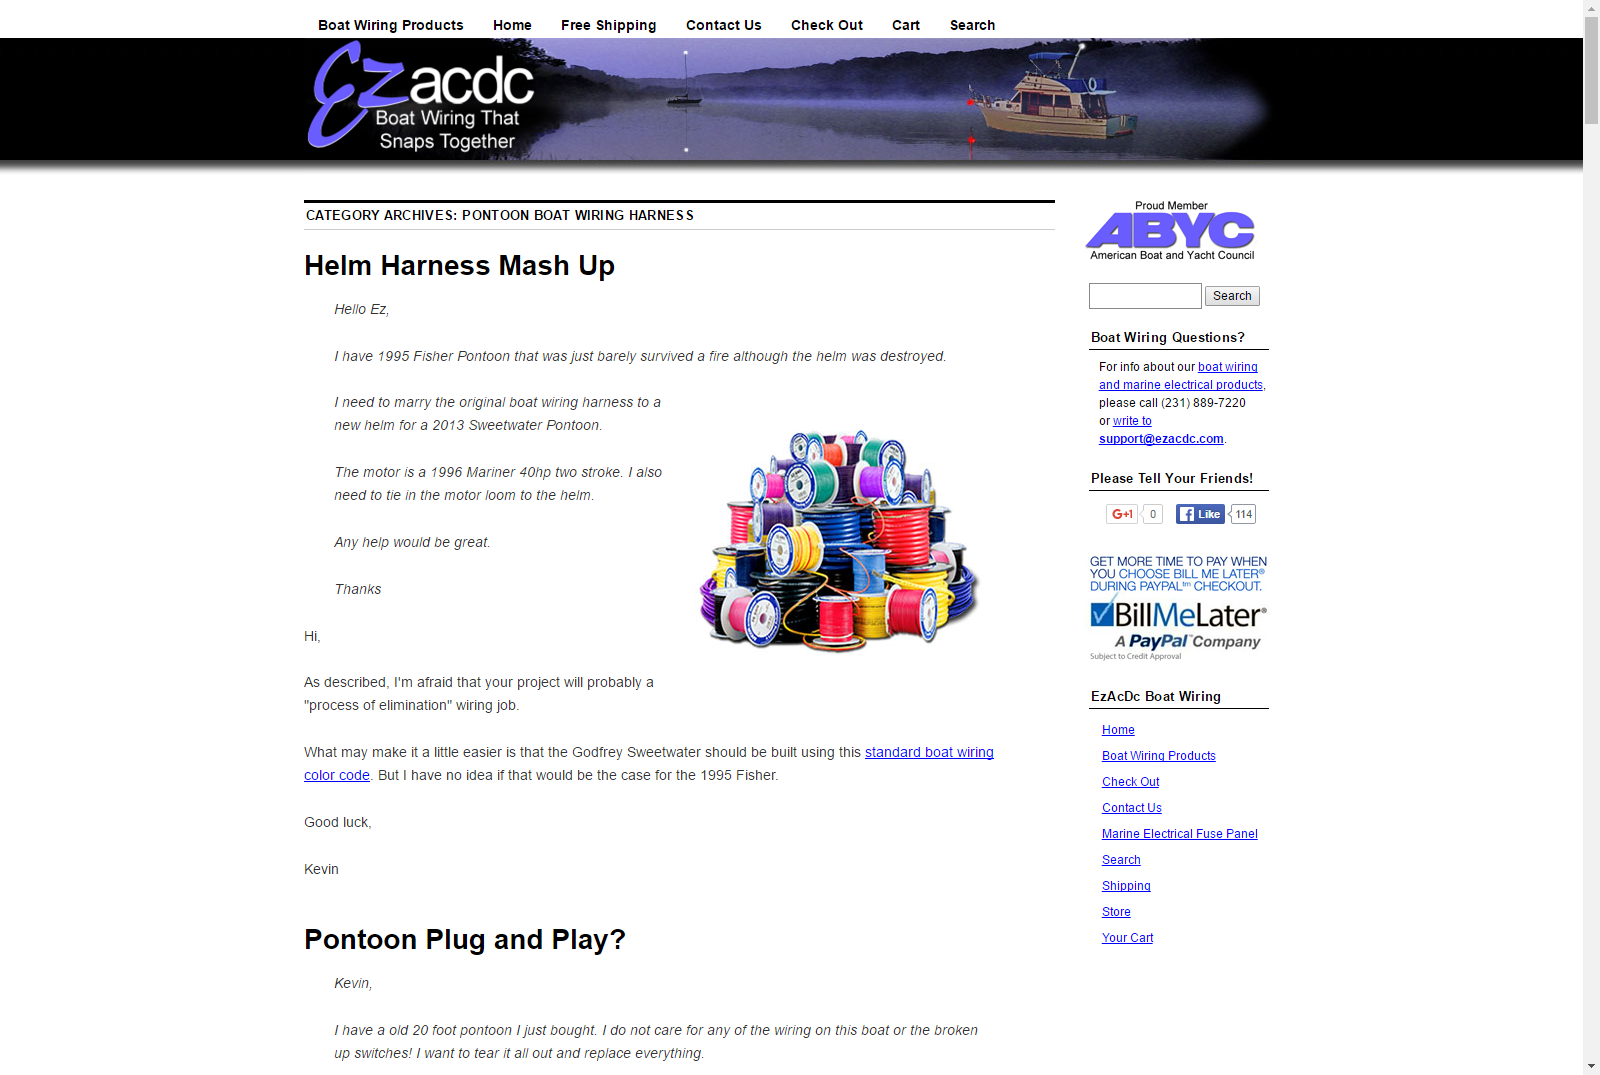 pontoon boat wiring harness boat wiring easy to install ezacdc marine electrical [ 1600 x 1075 Pixel ]